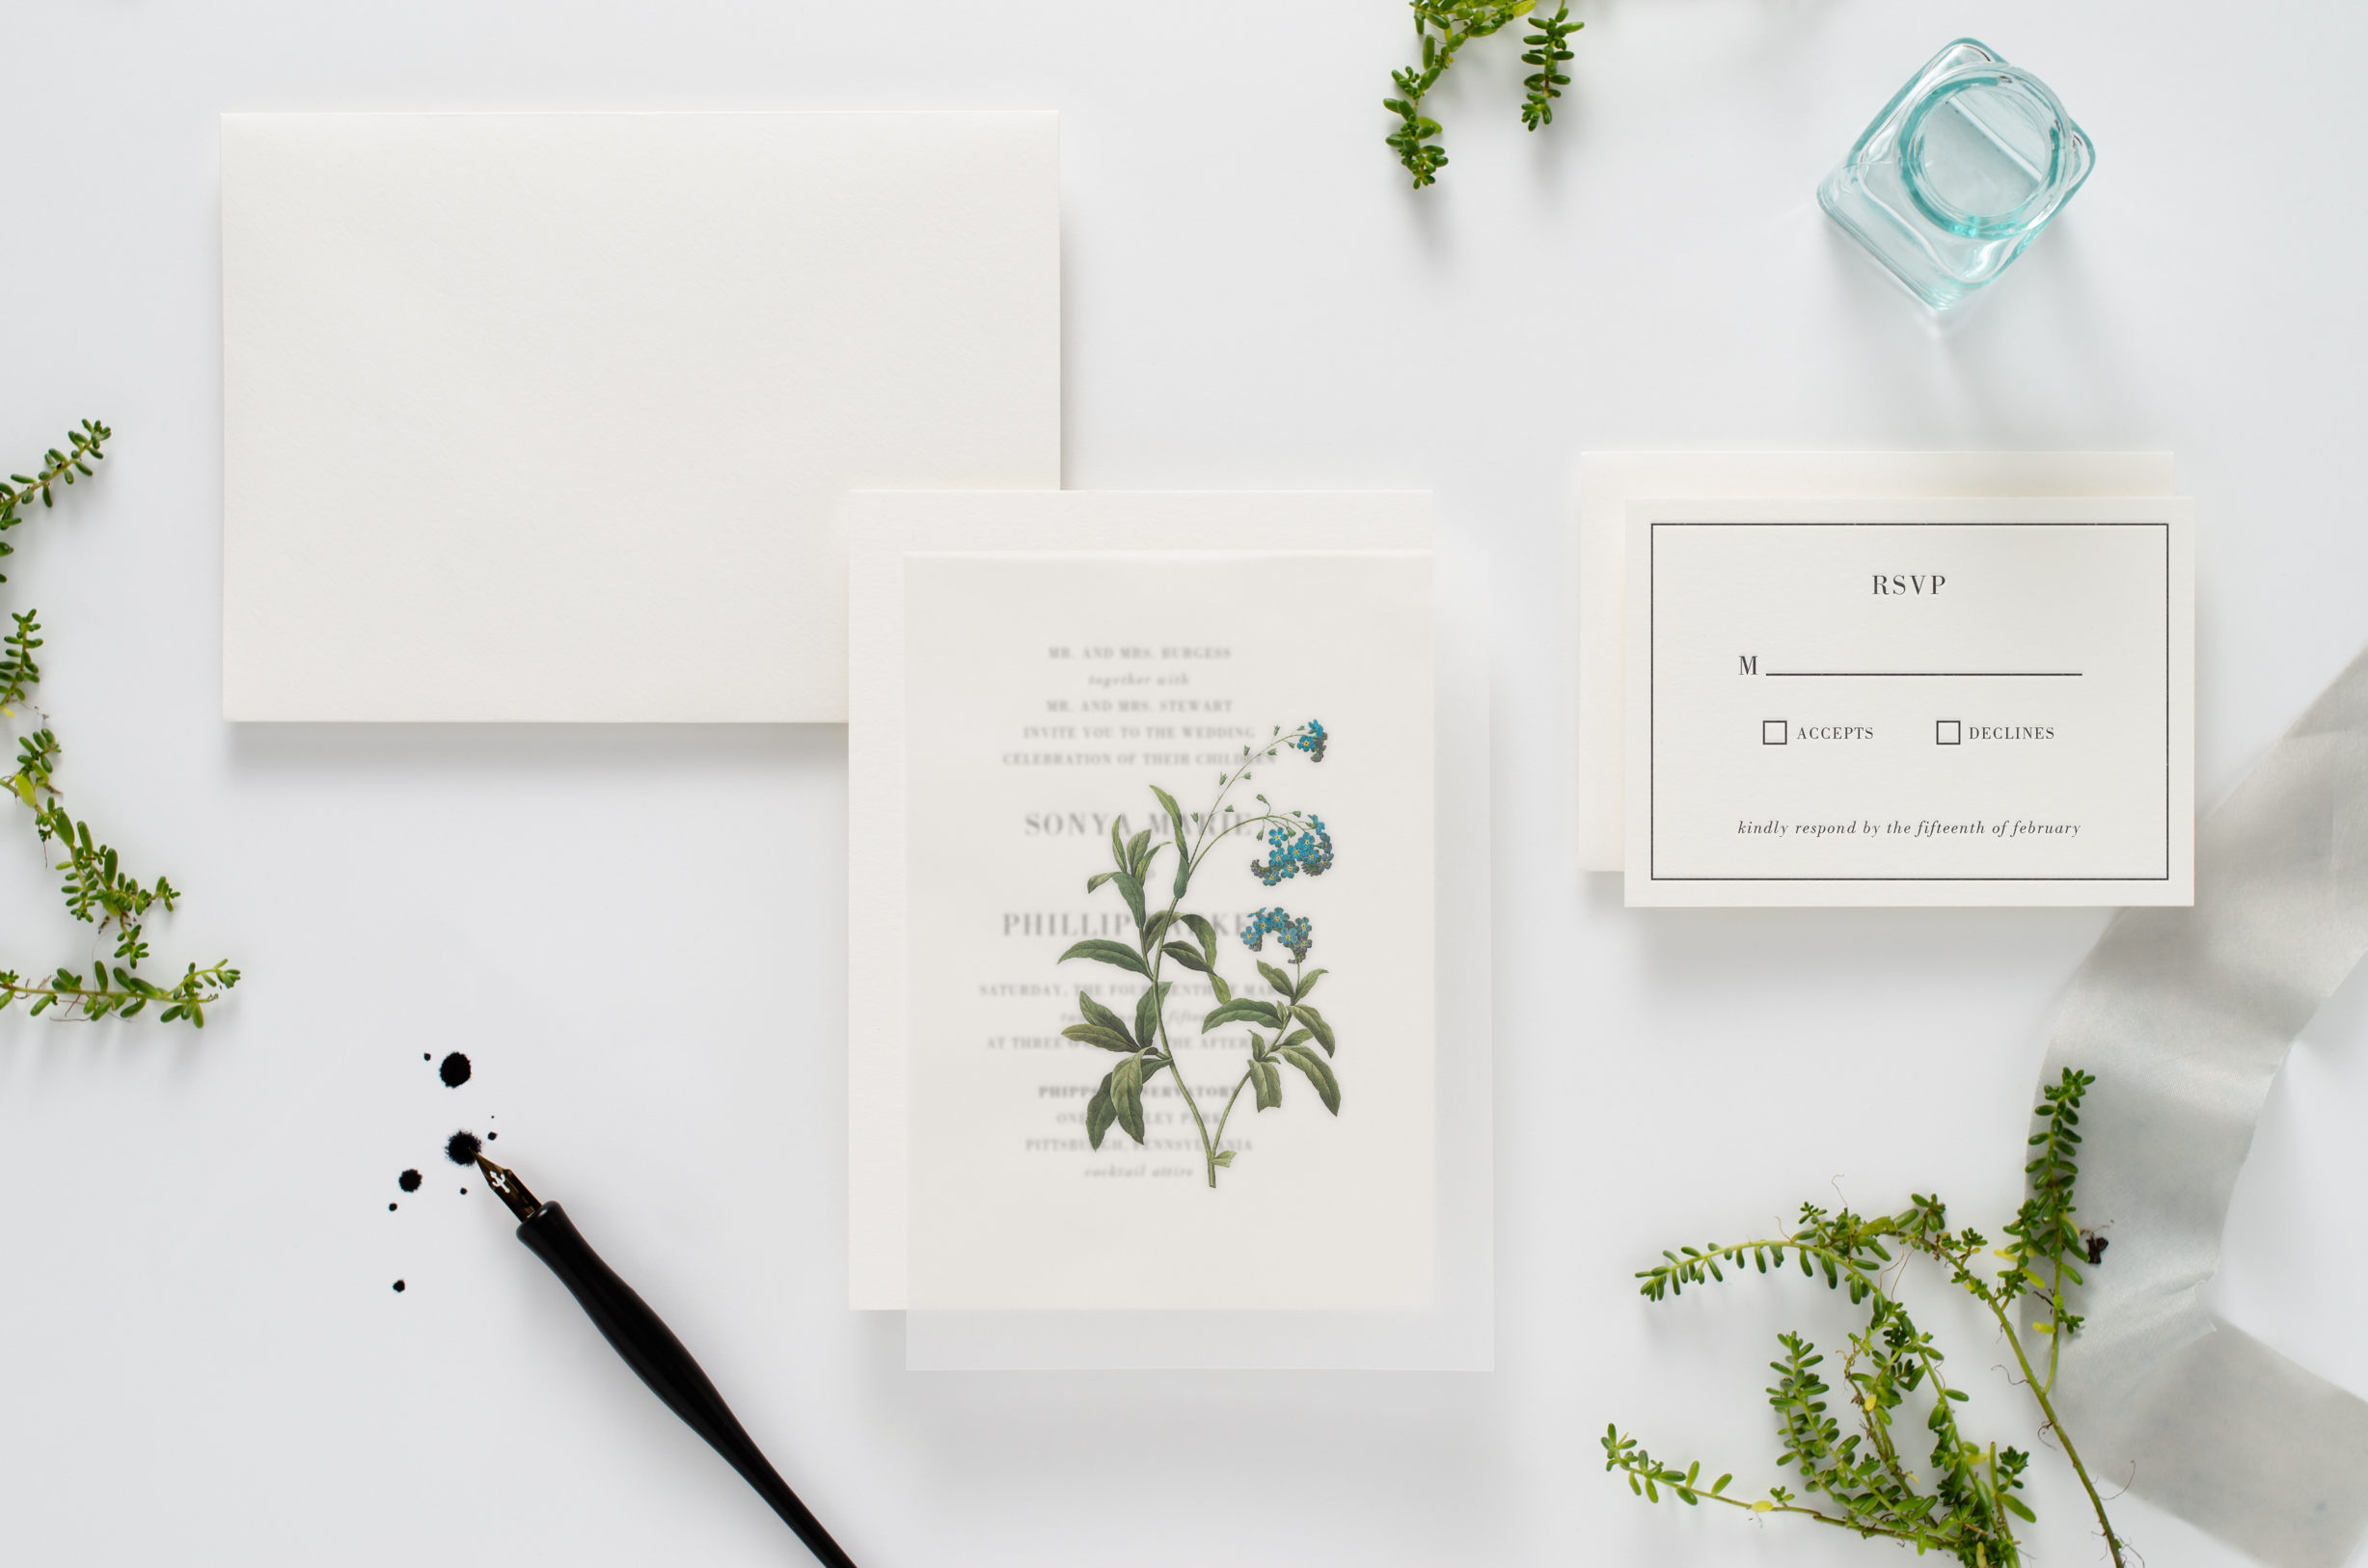 Herbarium-esque, botanical themed letterpress wedding invitation suite with floral vellum overlay